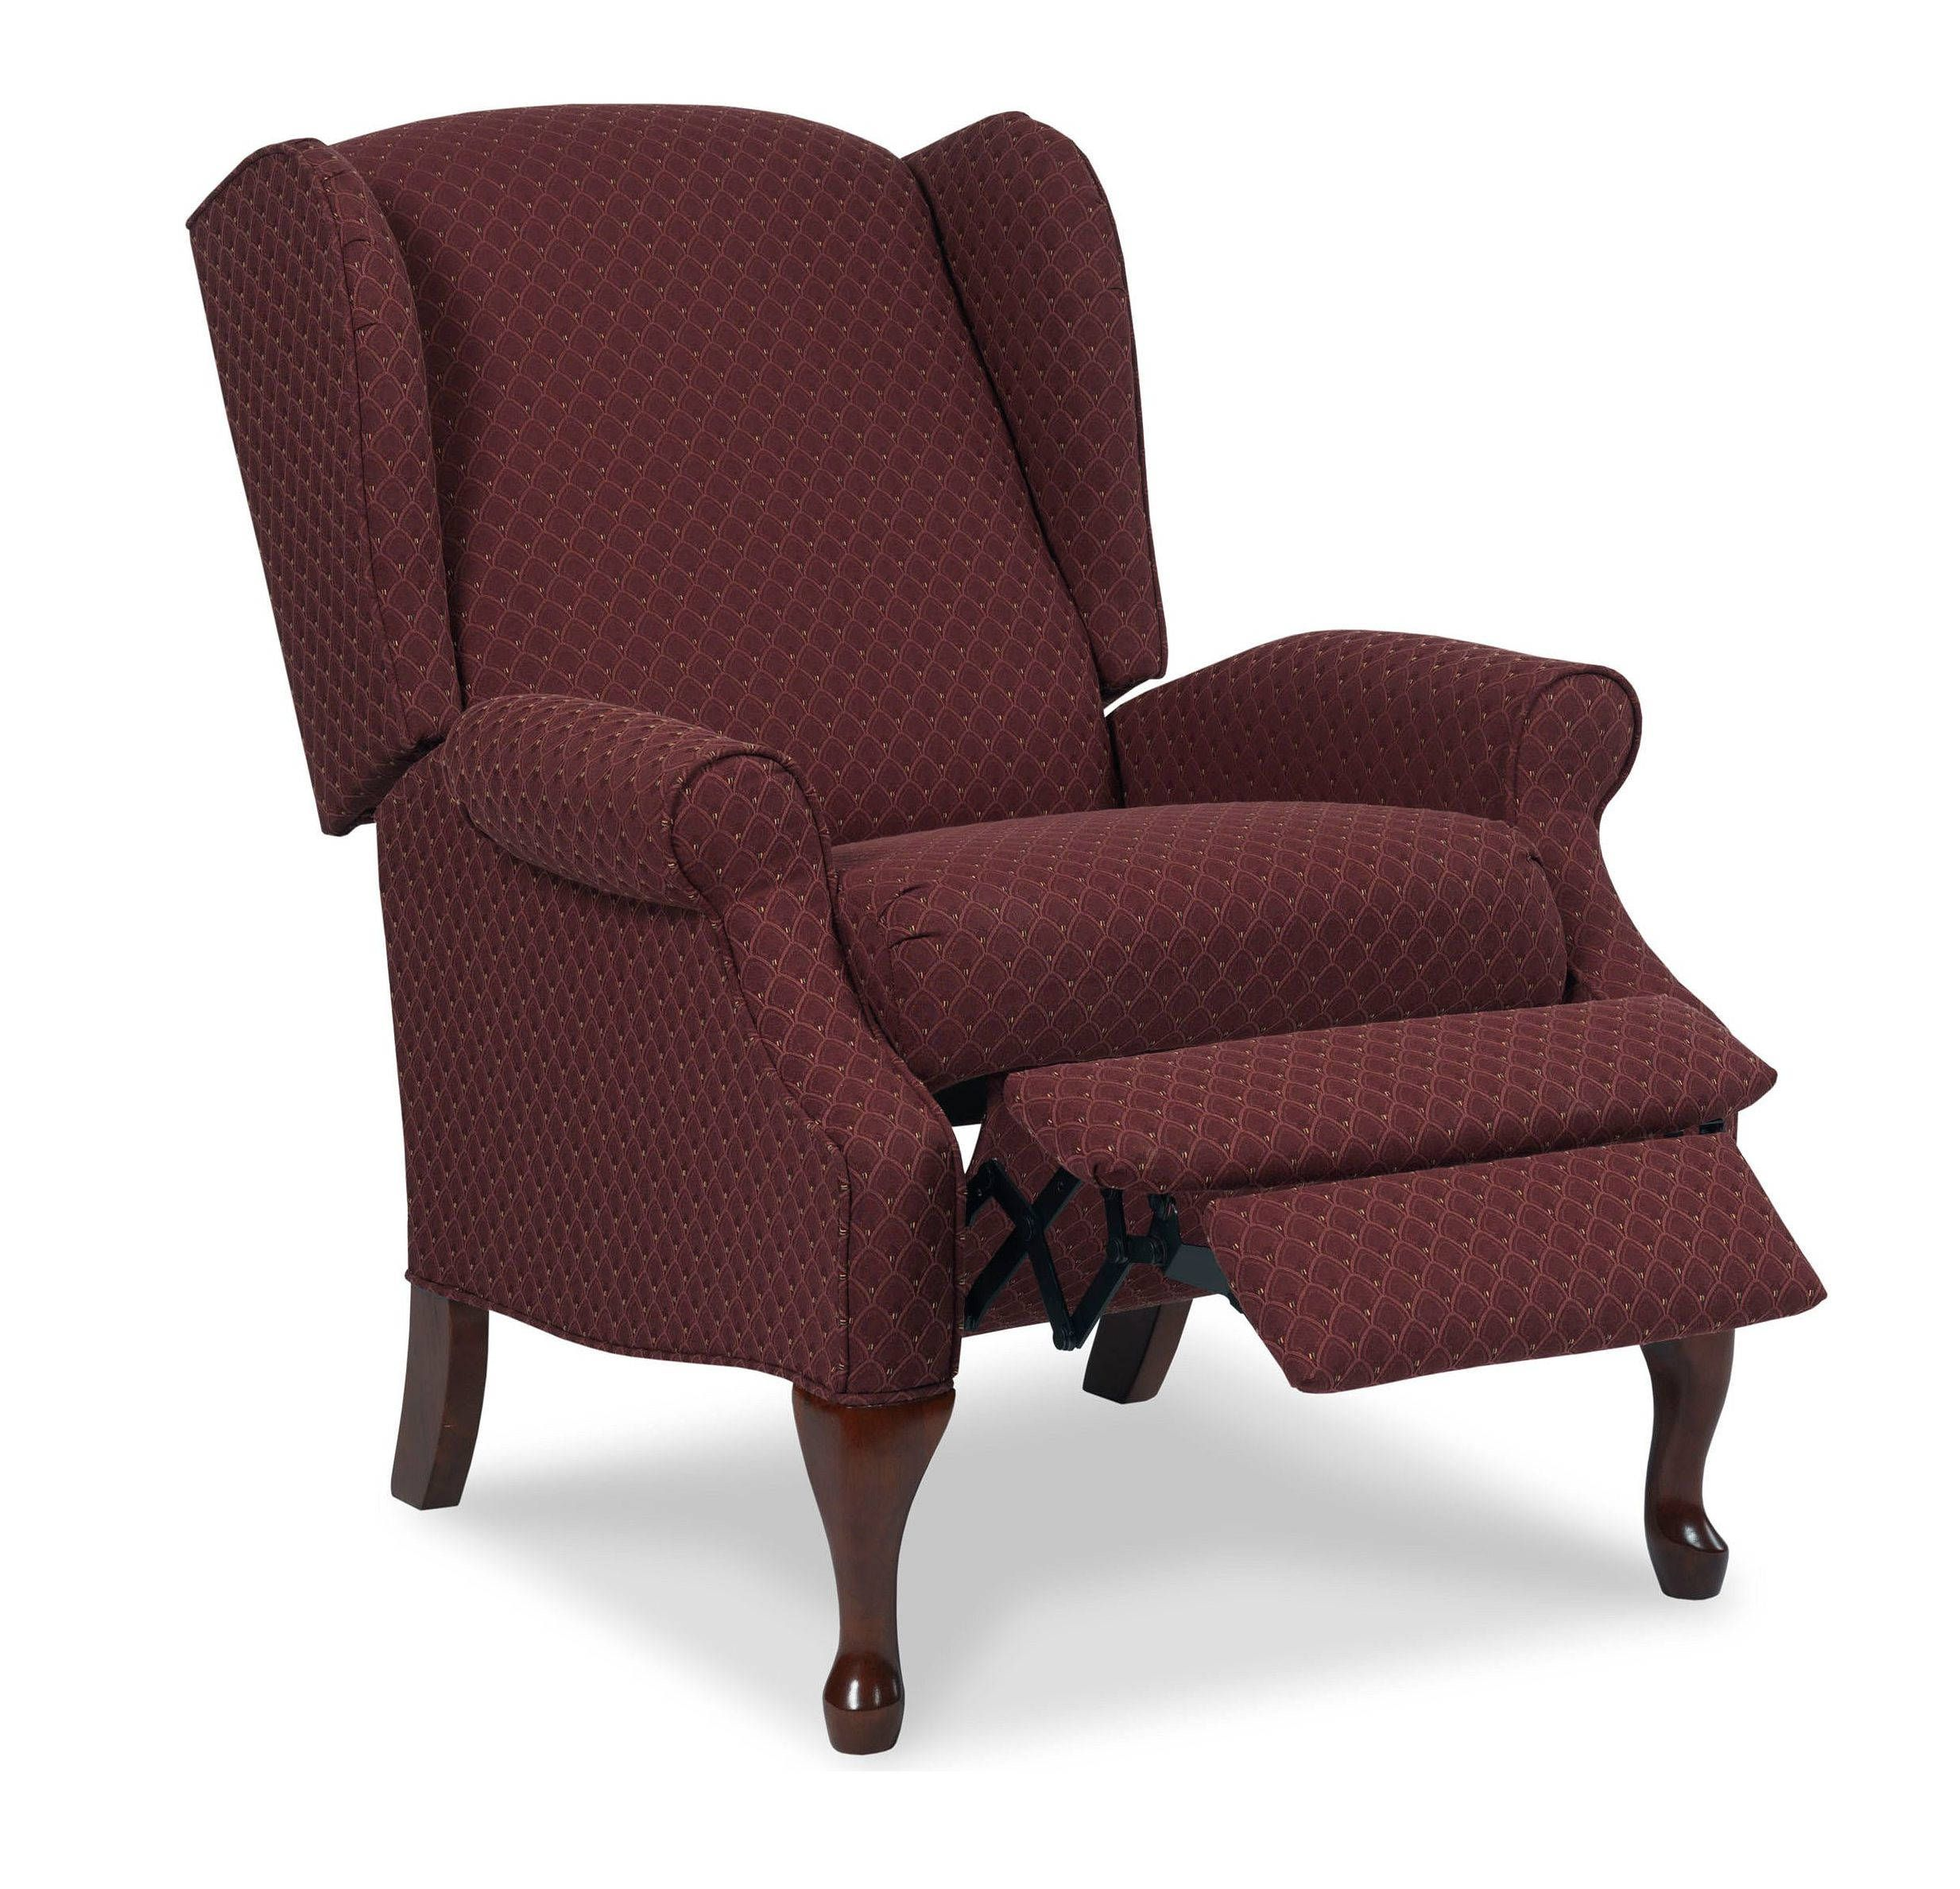 Outstanding Hampton Ditzy Shell Cherry Burgundy Fabric High Leg Recliner Pdpeps Interior Chair Design Pdpepsorg